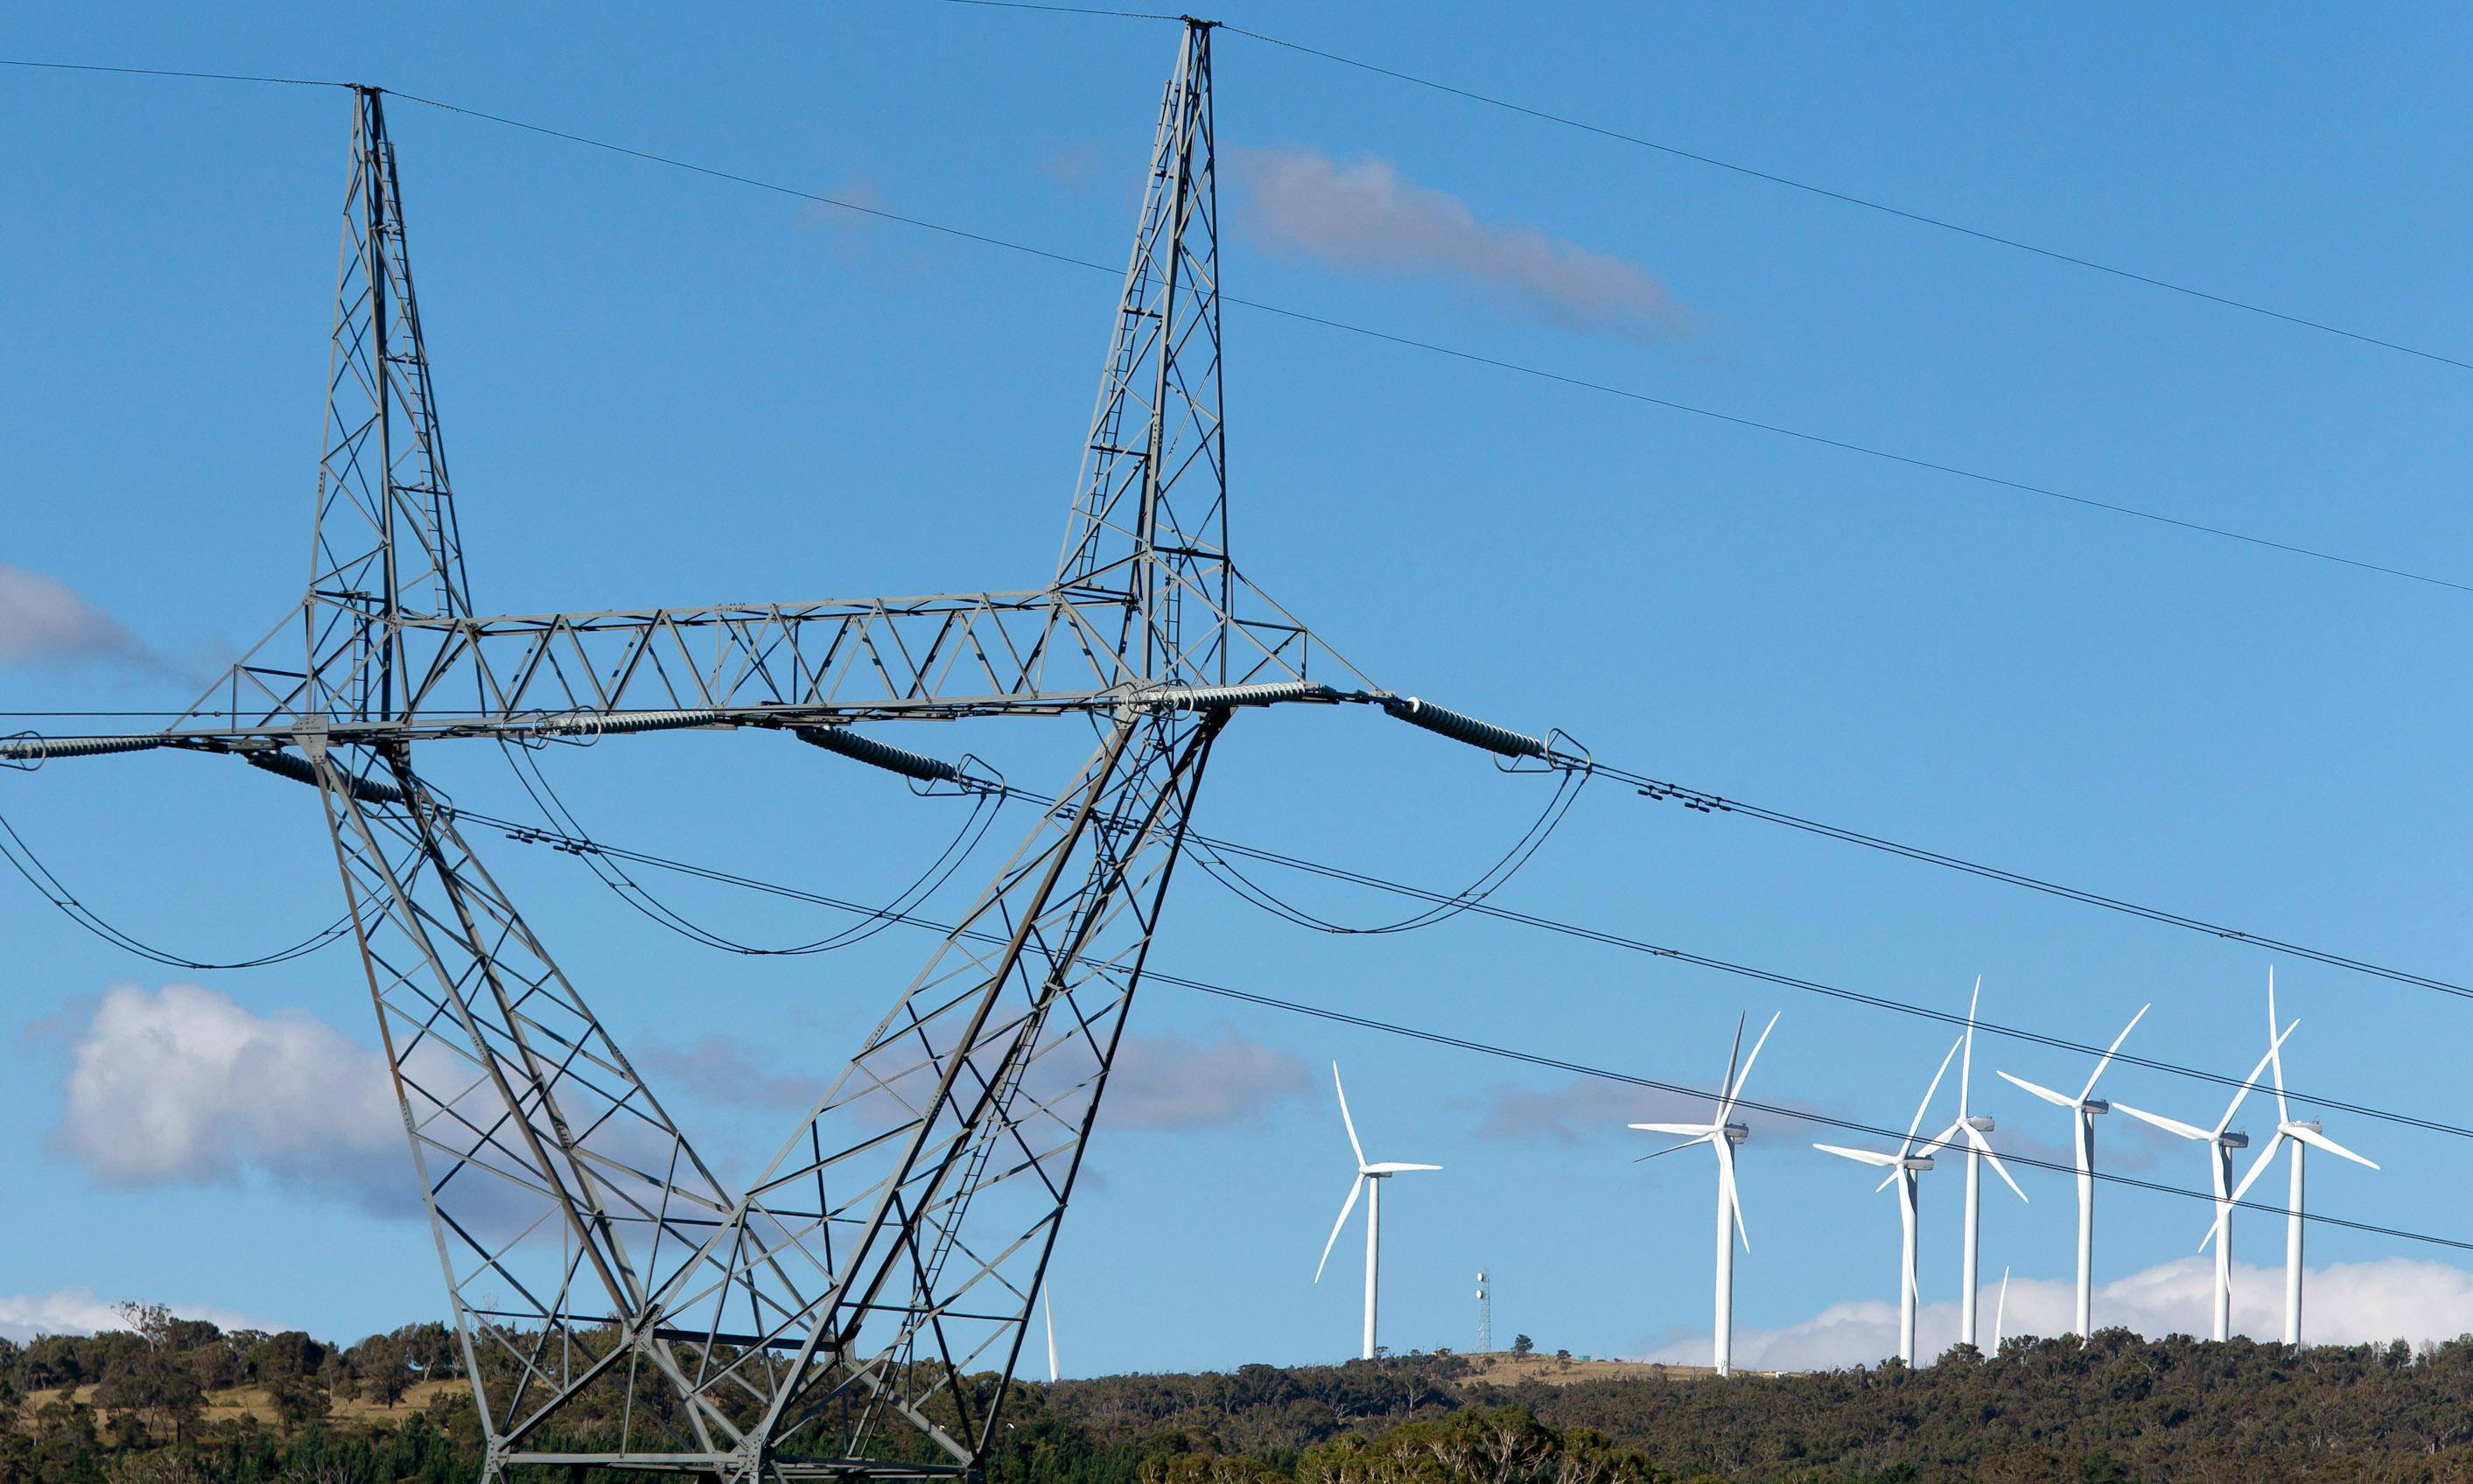 Australia's tortured energy debate: what's the state of play?